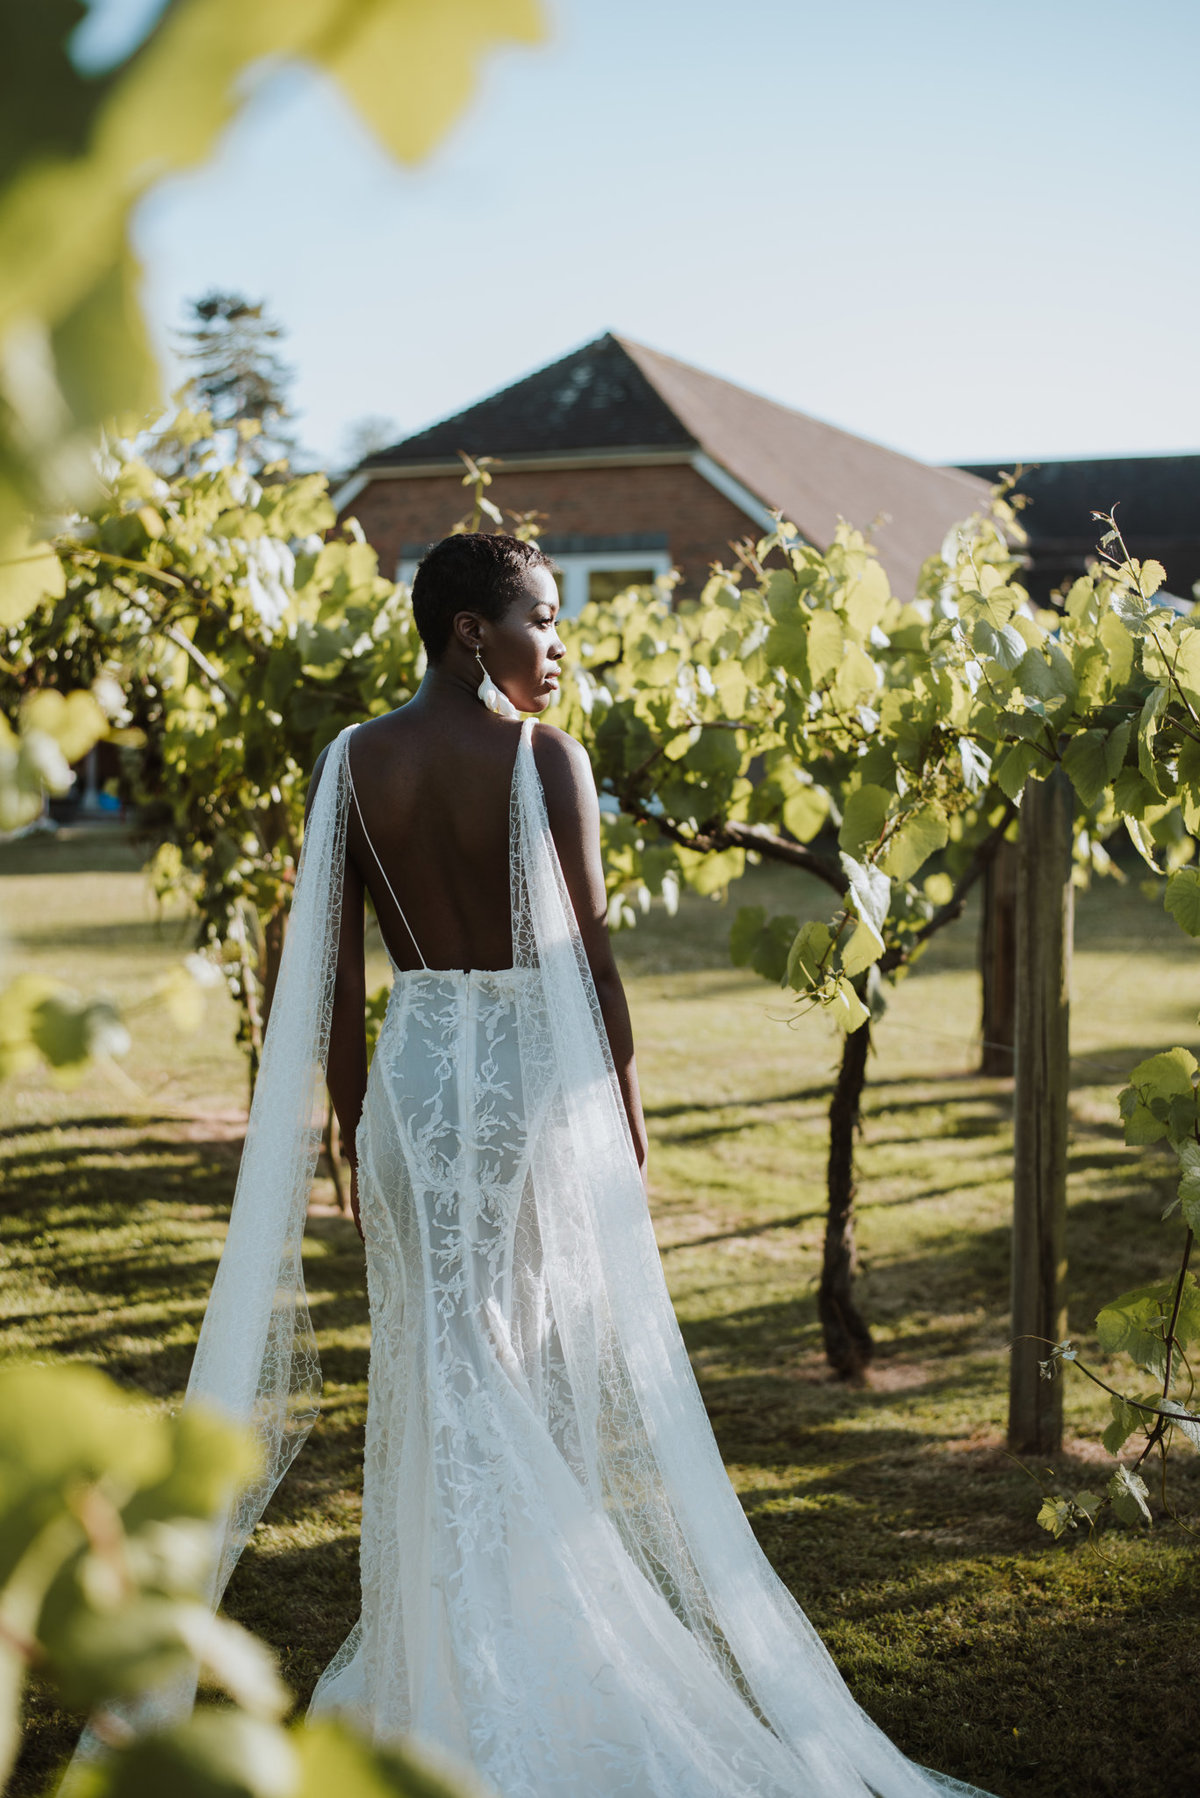 The Stars Inside - Vineyard Destination Wedding - Laura Martha Photography (48)